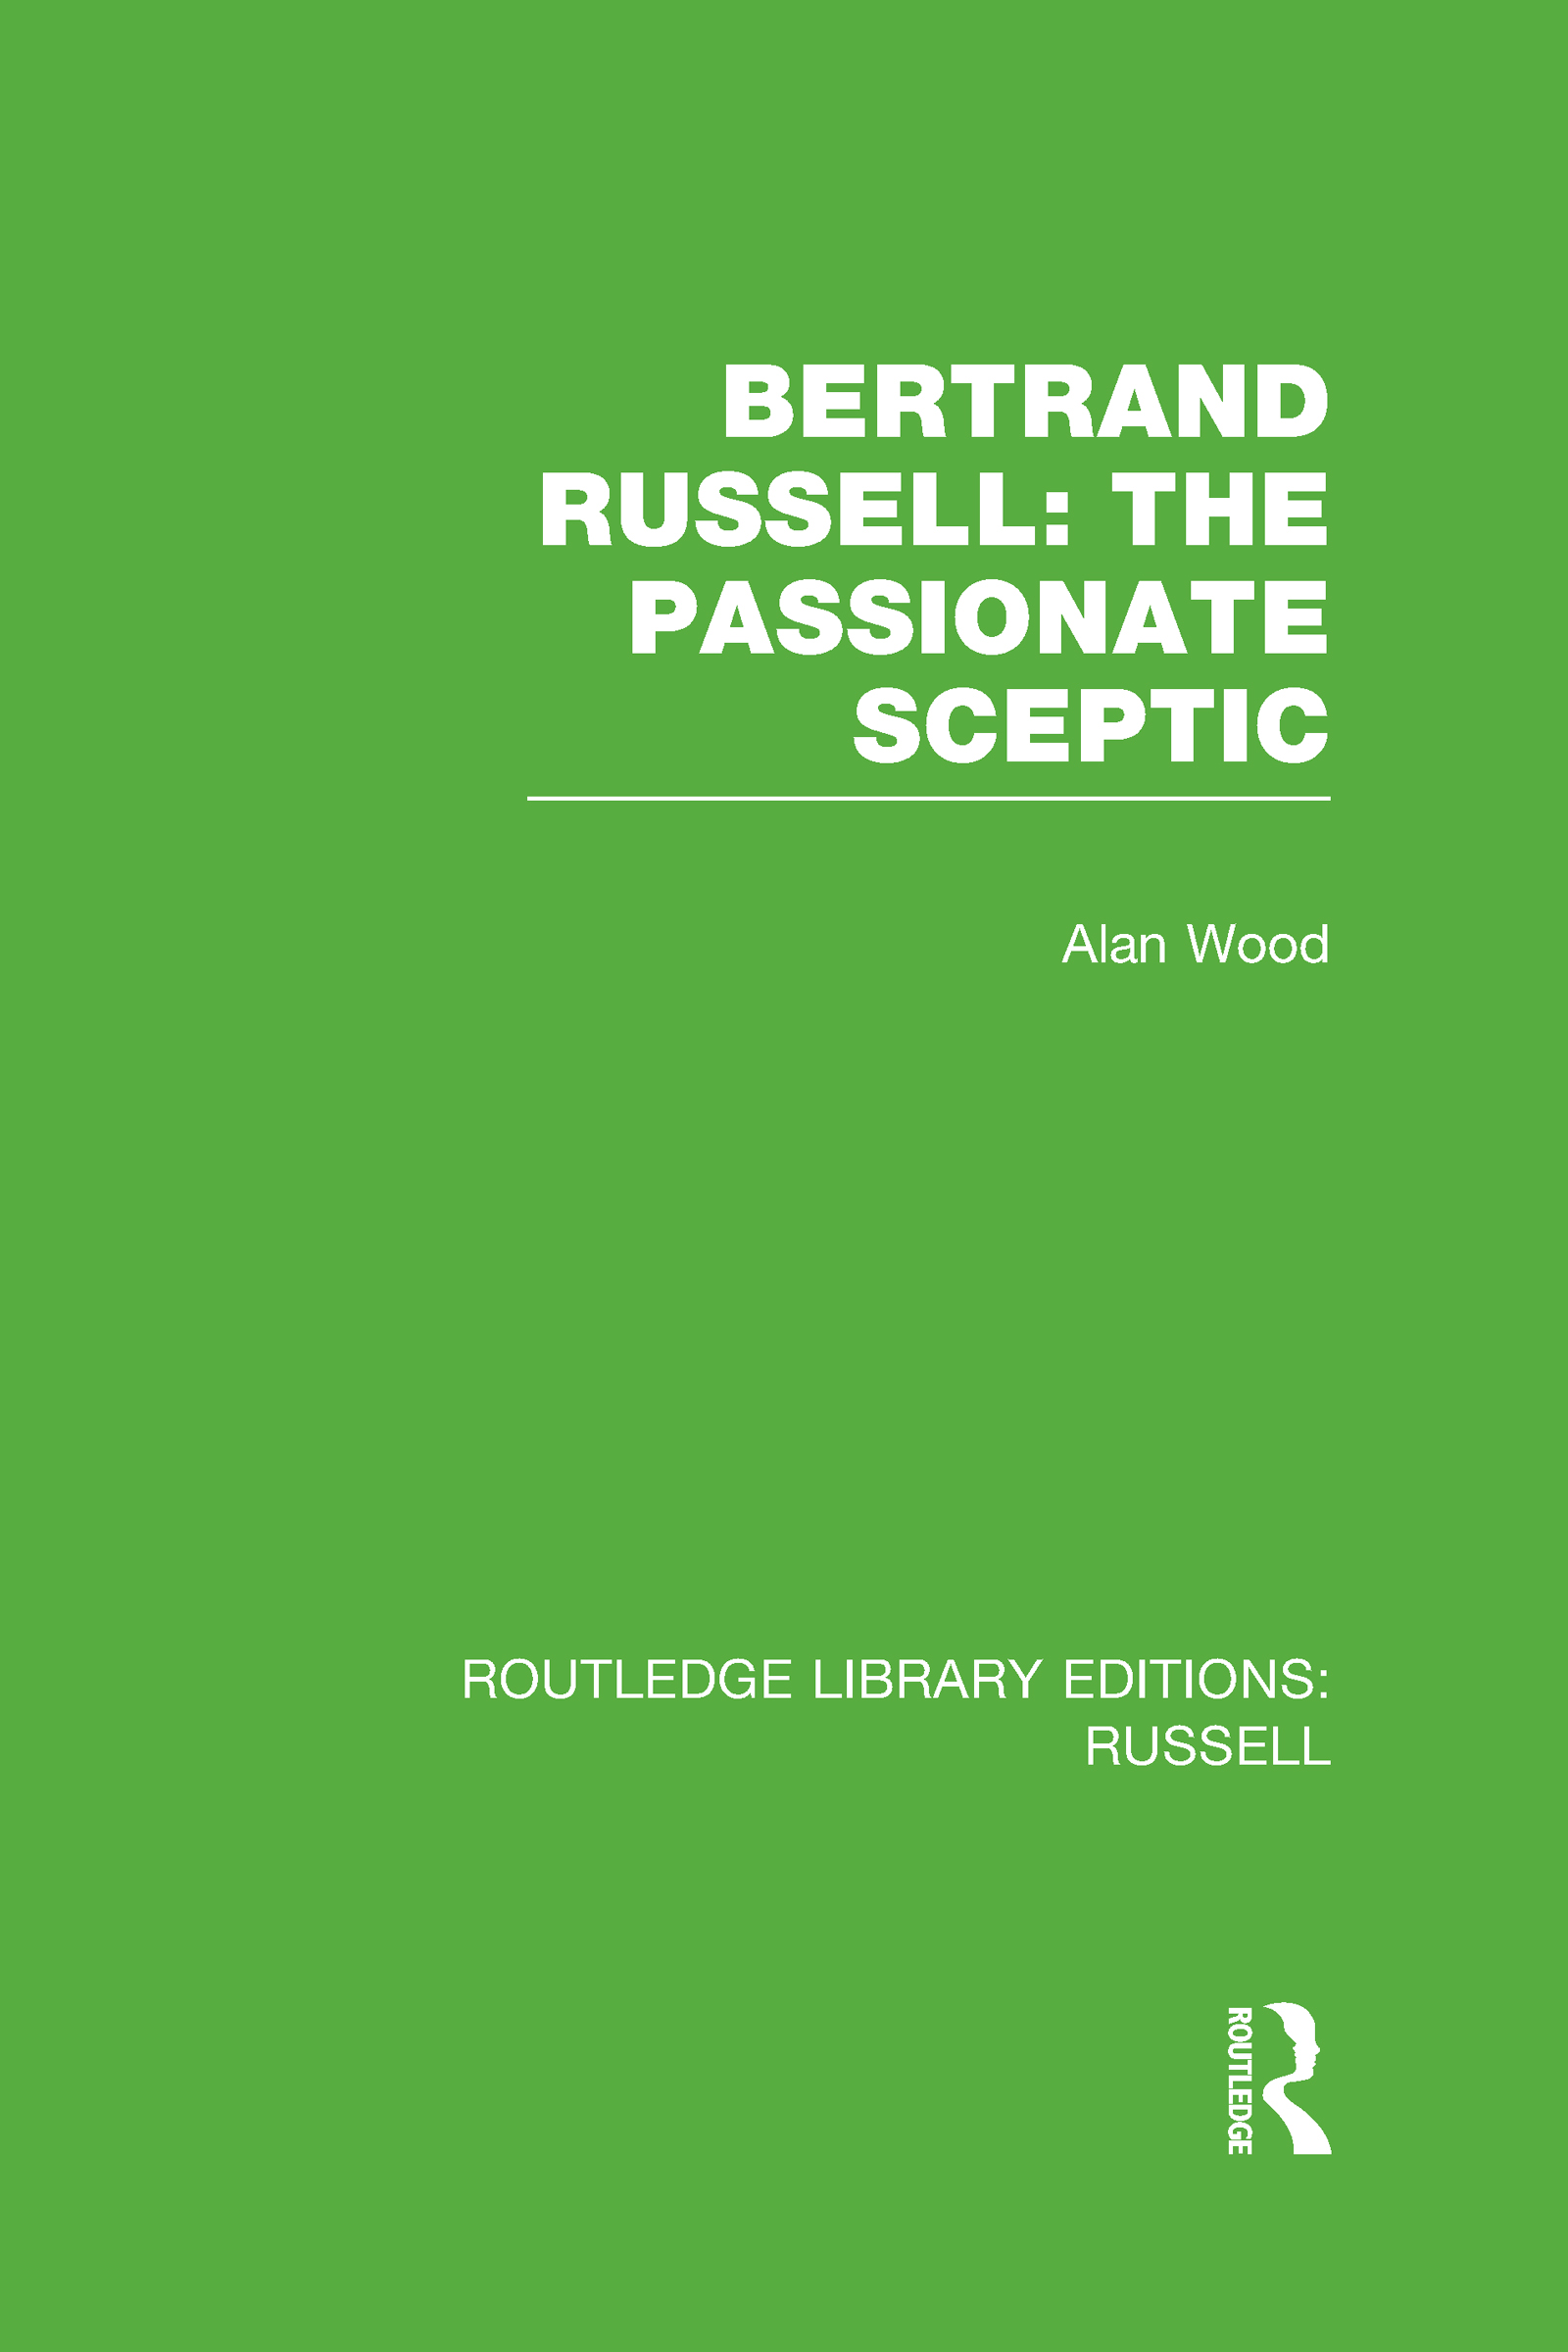 Bertrand Russell: The Passionate Sceptic